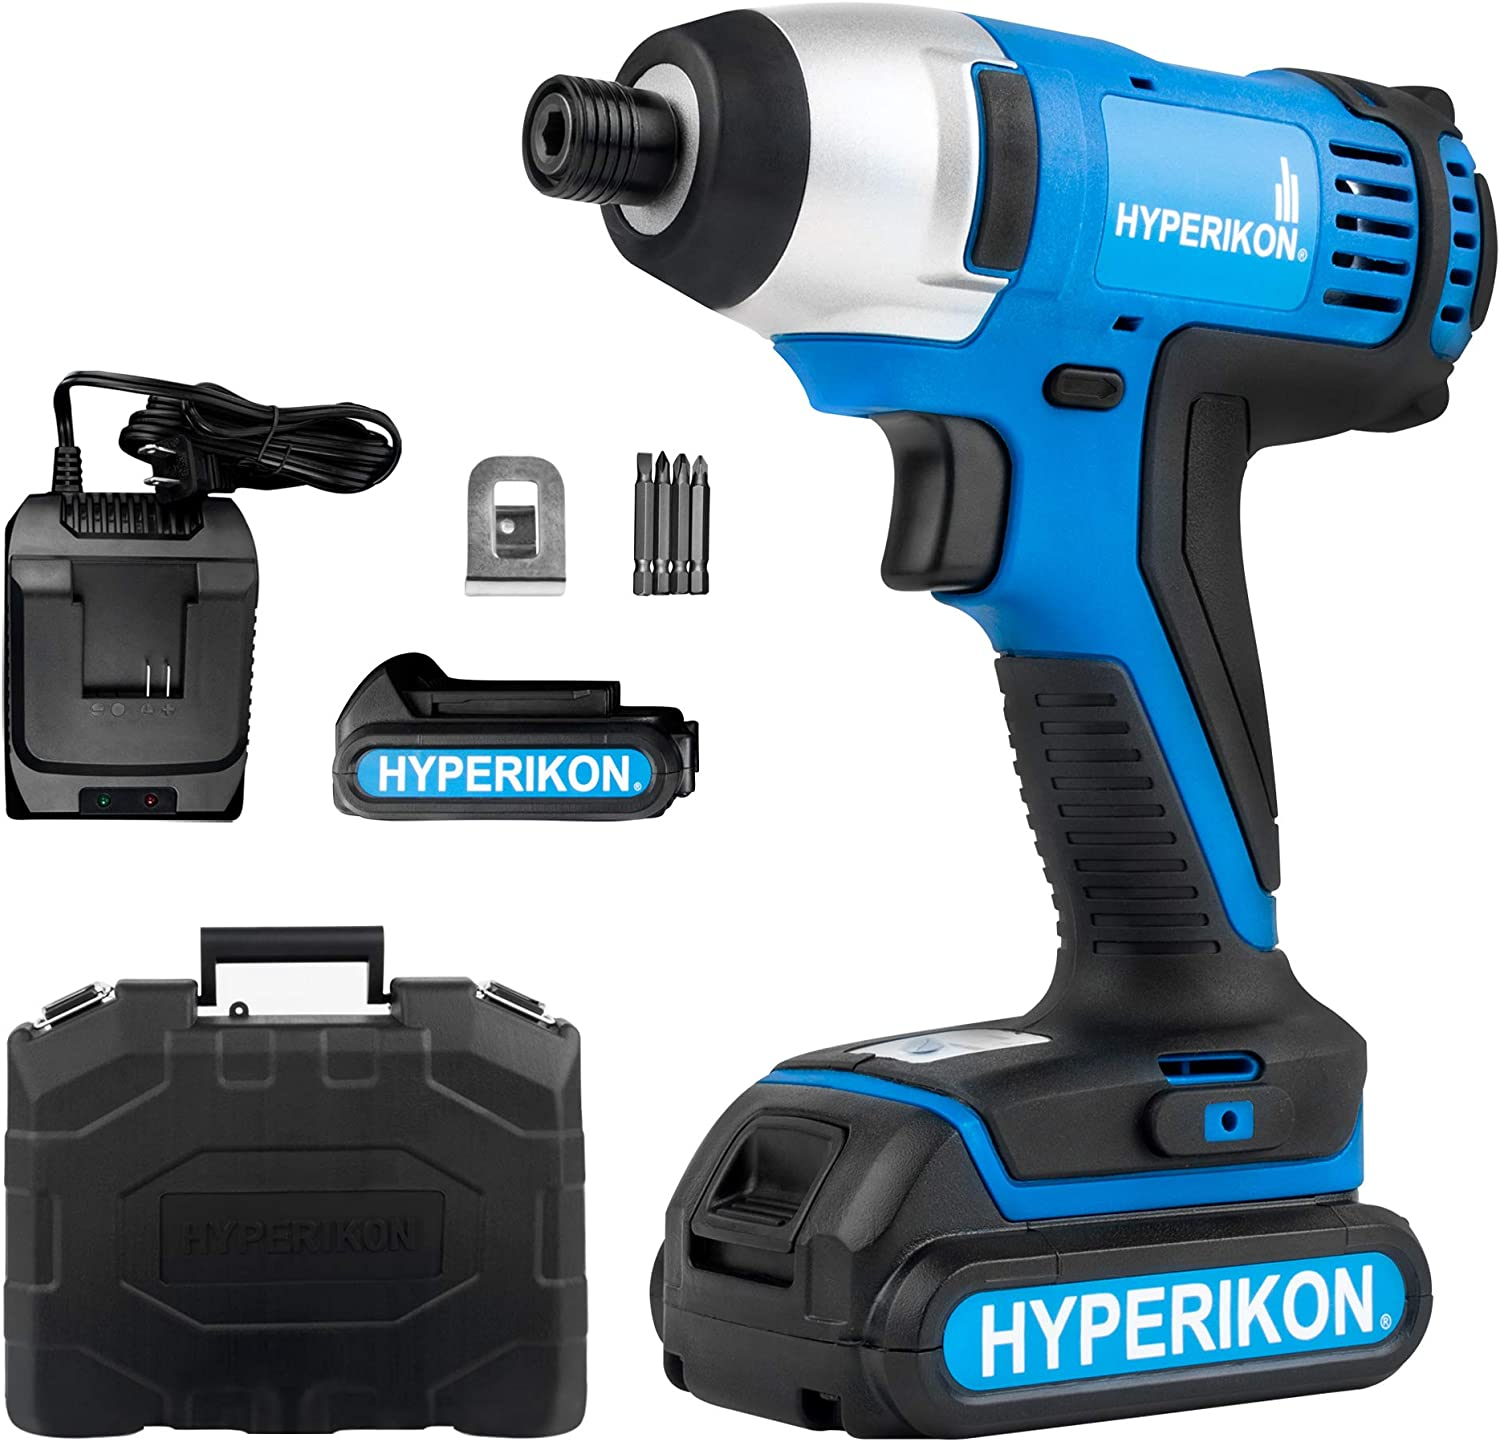 Hyperikon Cordless Impact Driver, 1 4 Inch, 1.5Ah, Compact Impact Driver Tool, Carrying Bag, Extra Battery and 120V Charger Included